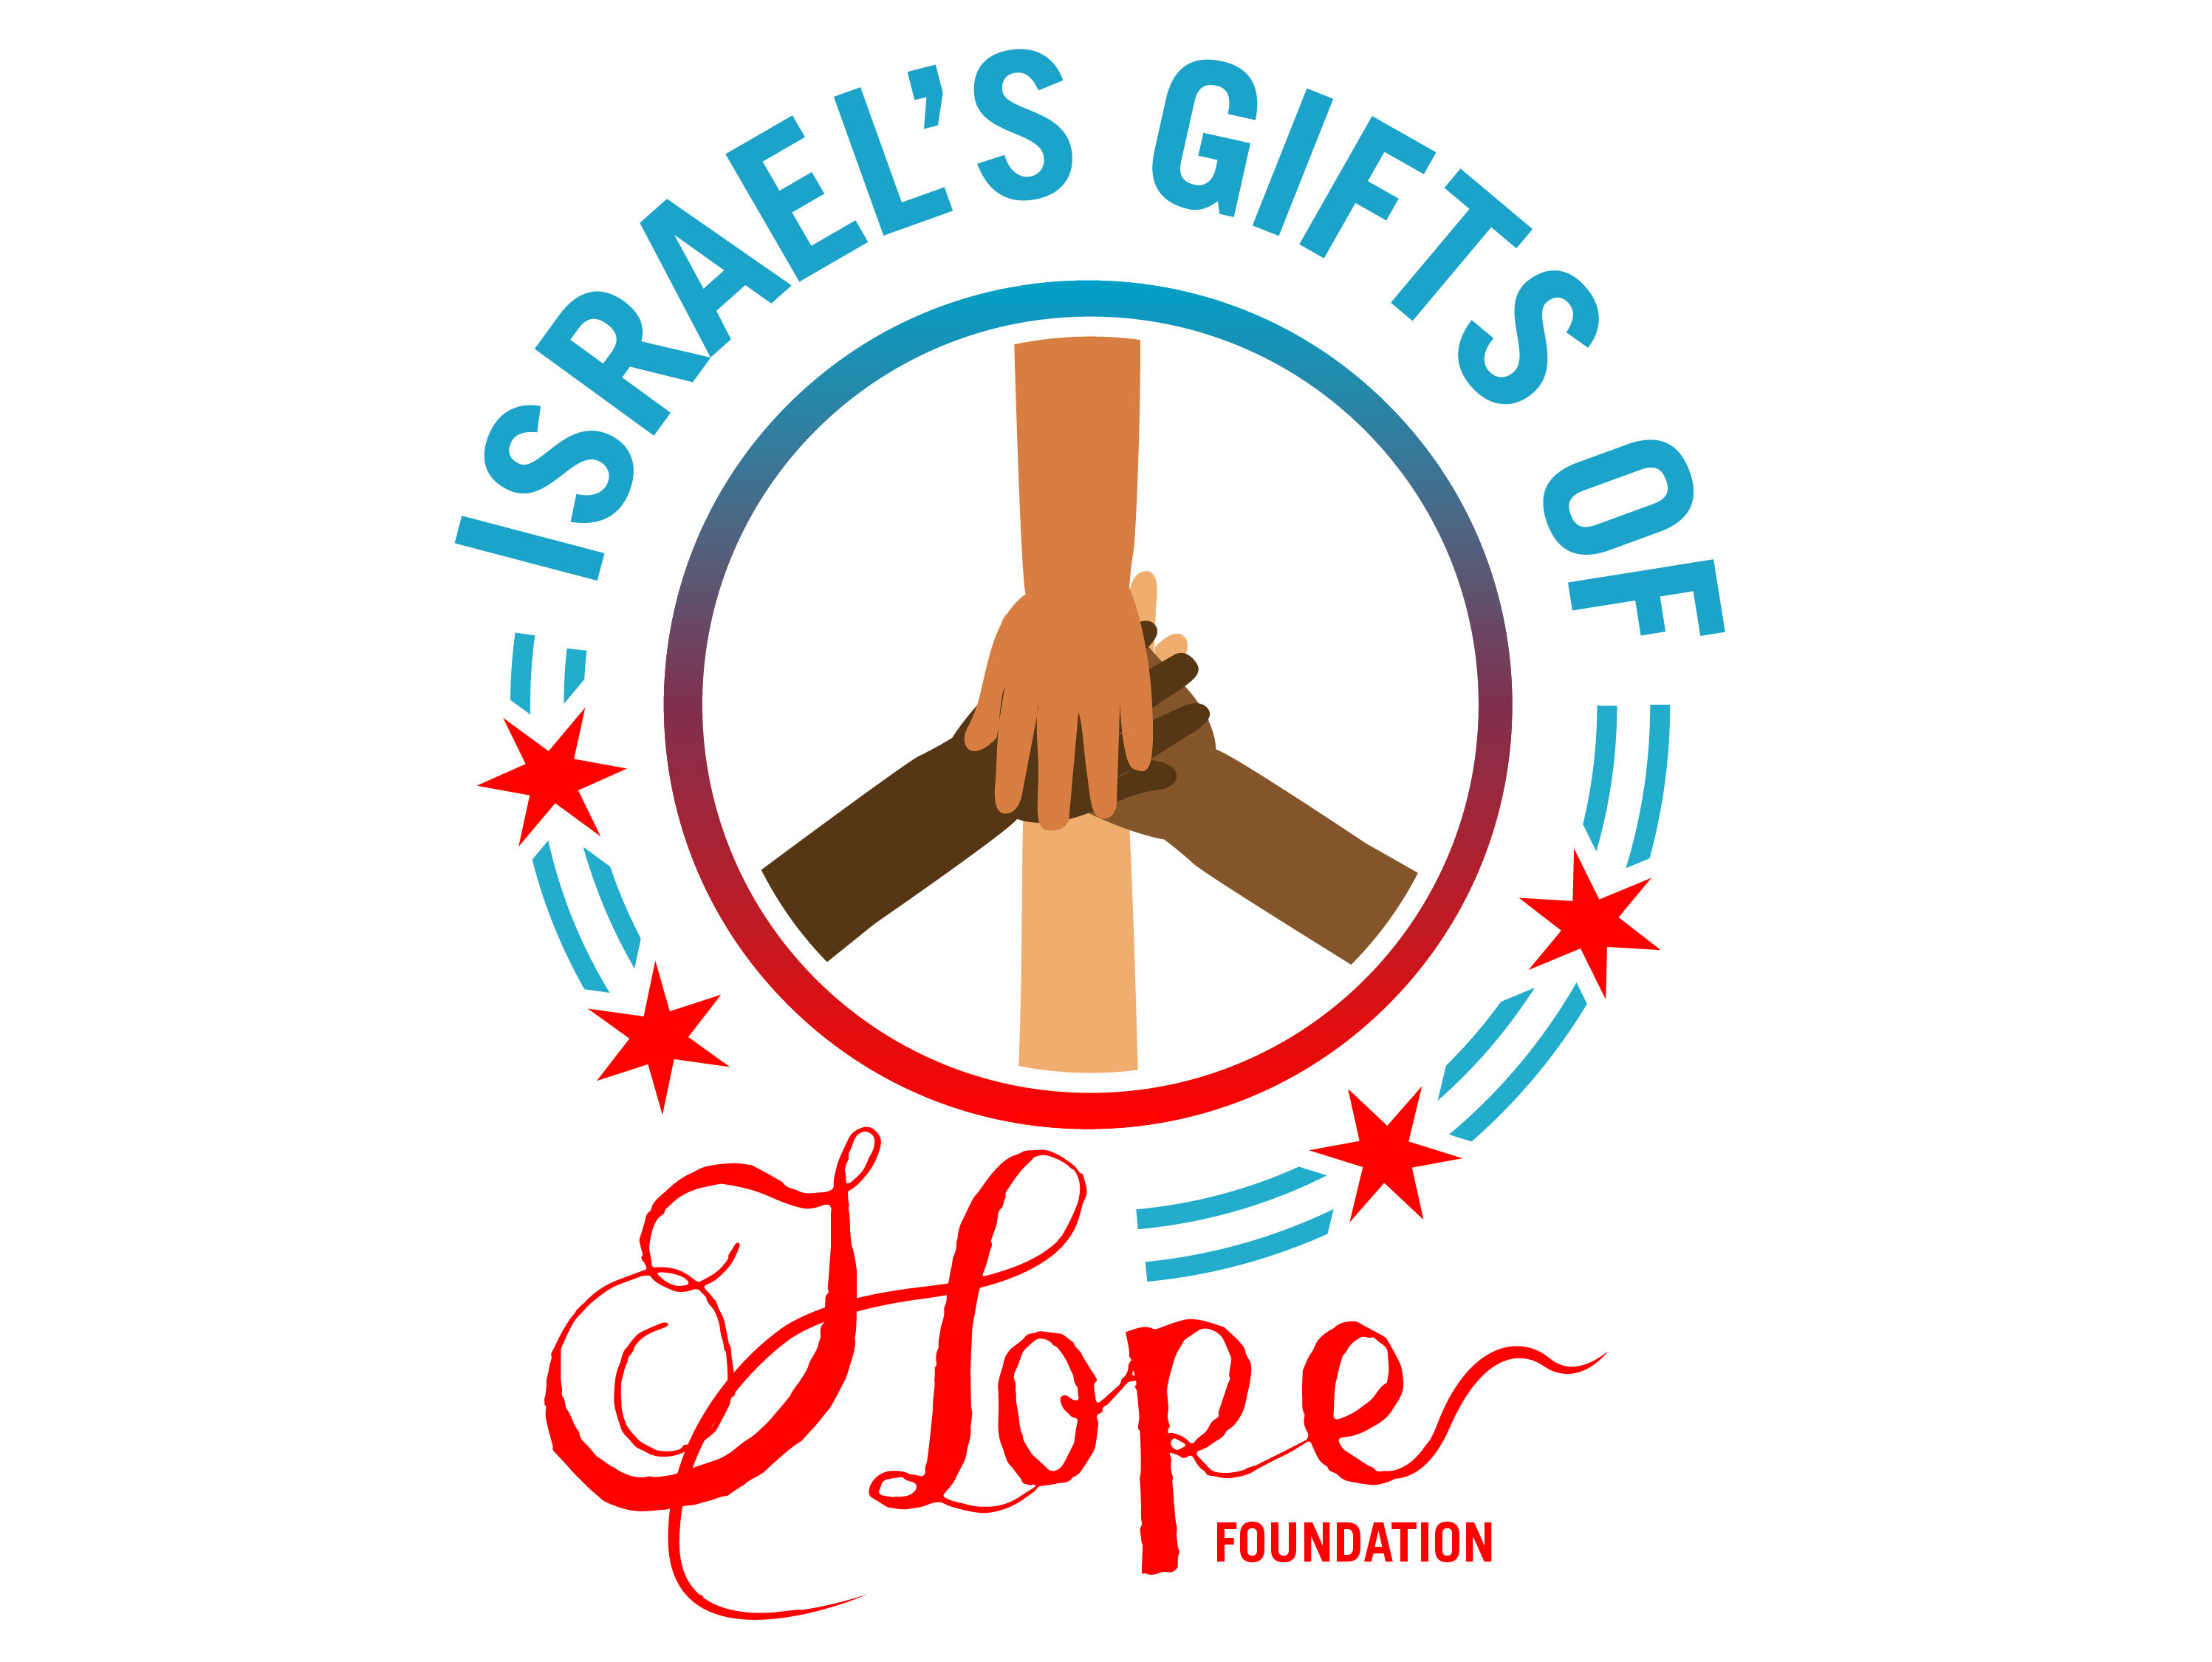 Israel's Gifts of Hope Foundation